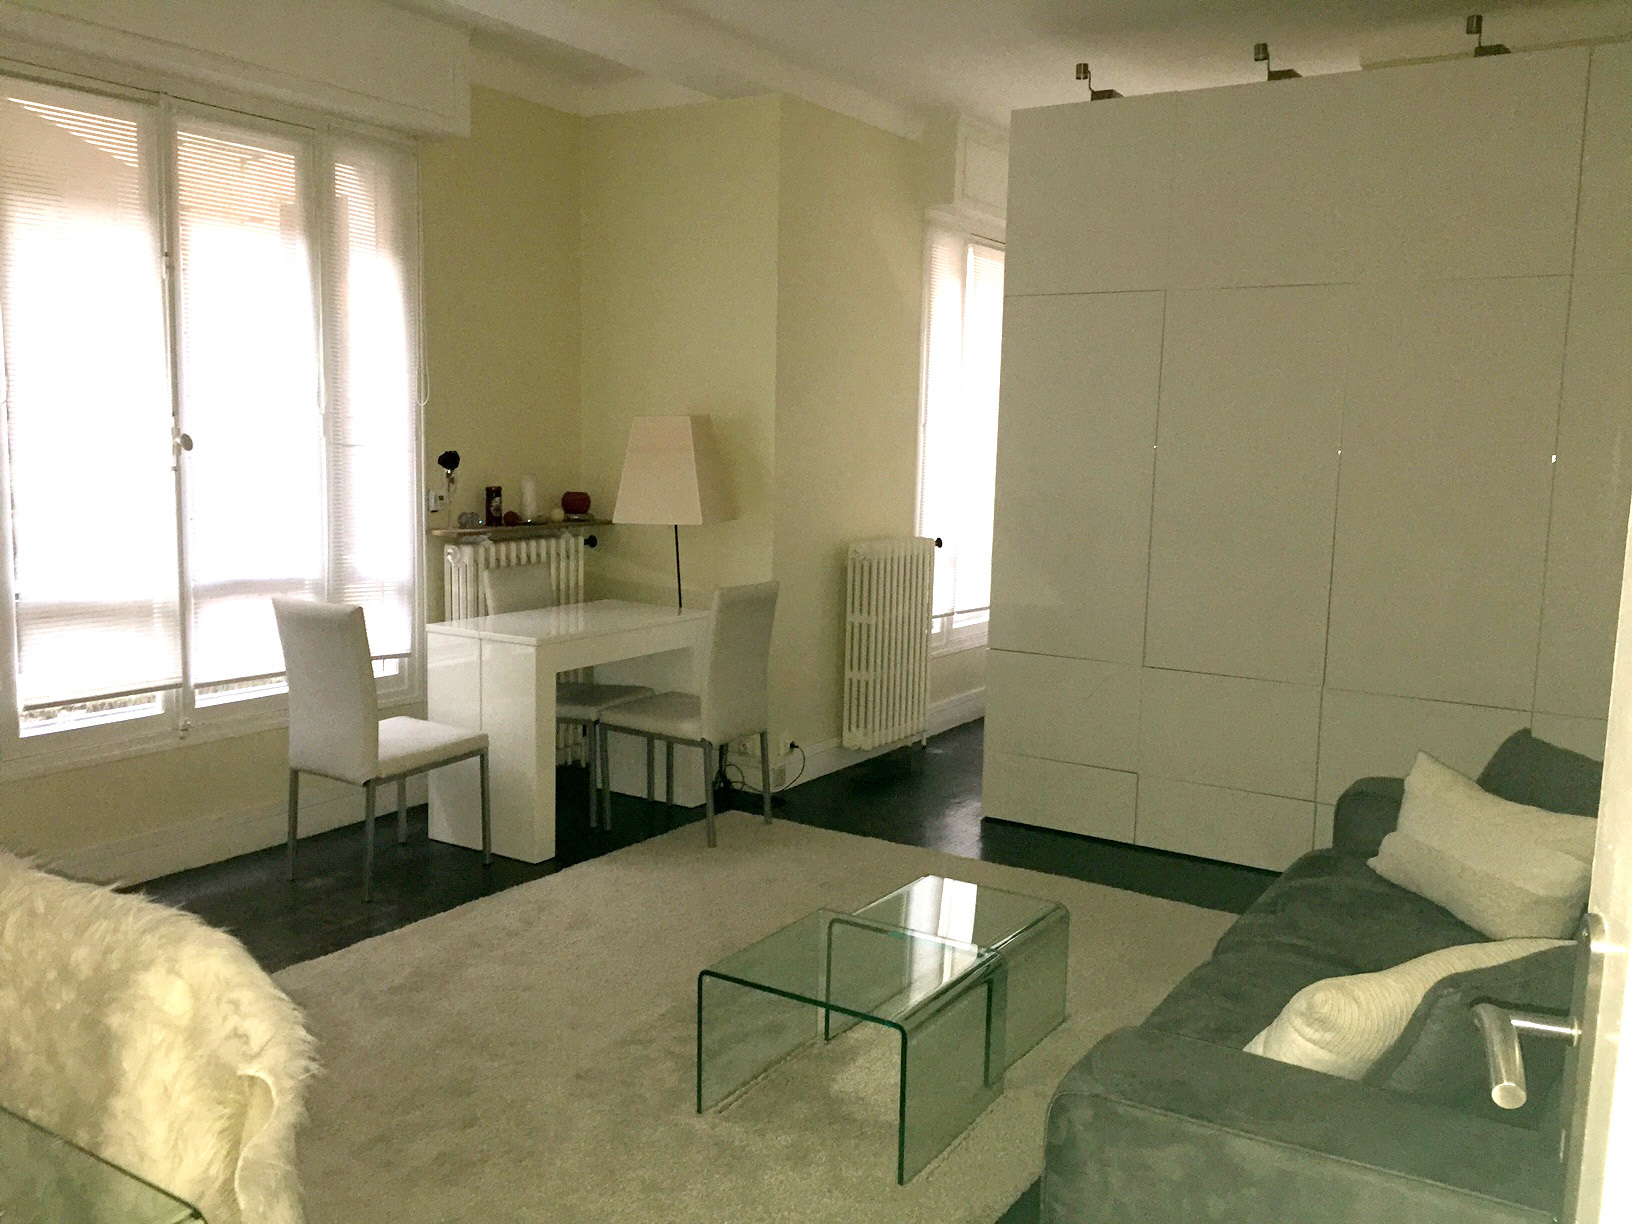 Studio Apartment Separate Sleeping Area quiet residential area - studio apartment - la costa properties monaco